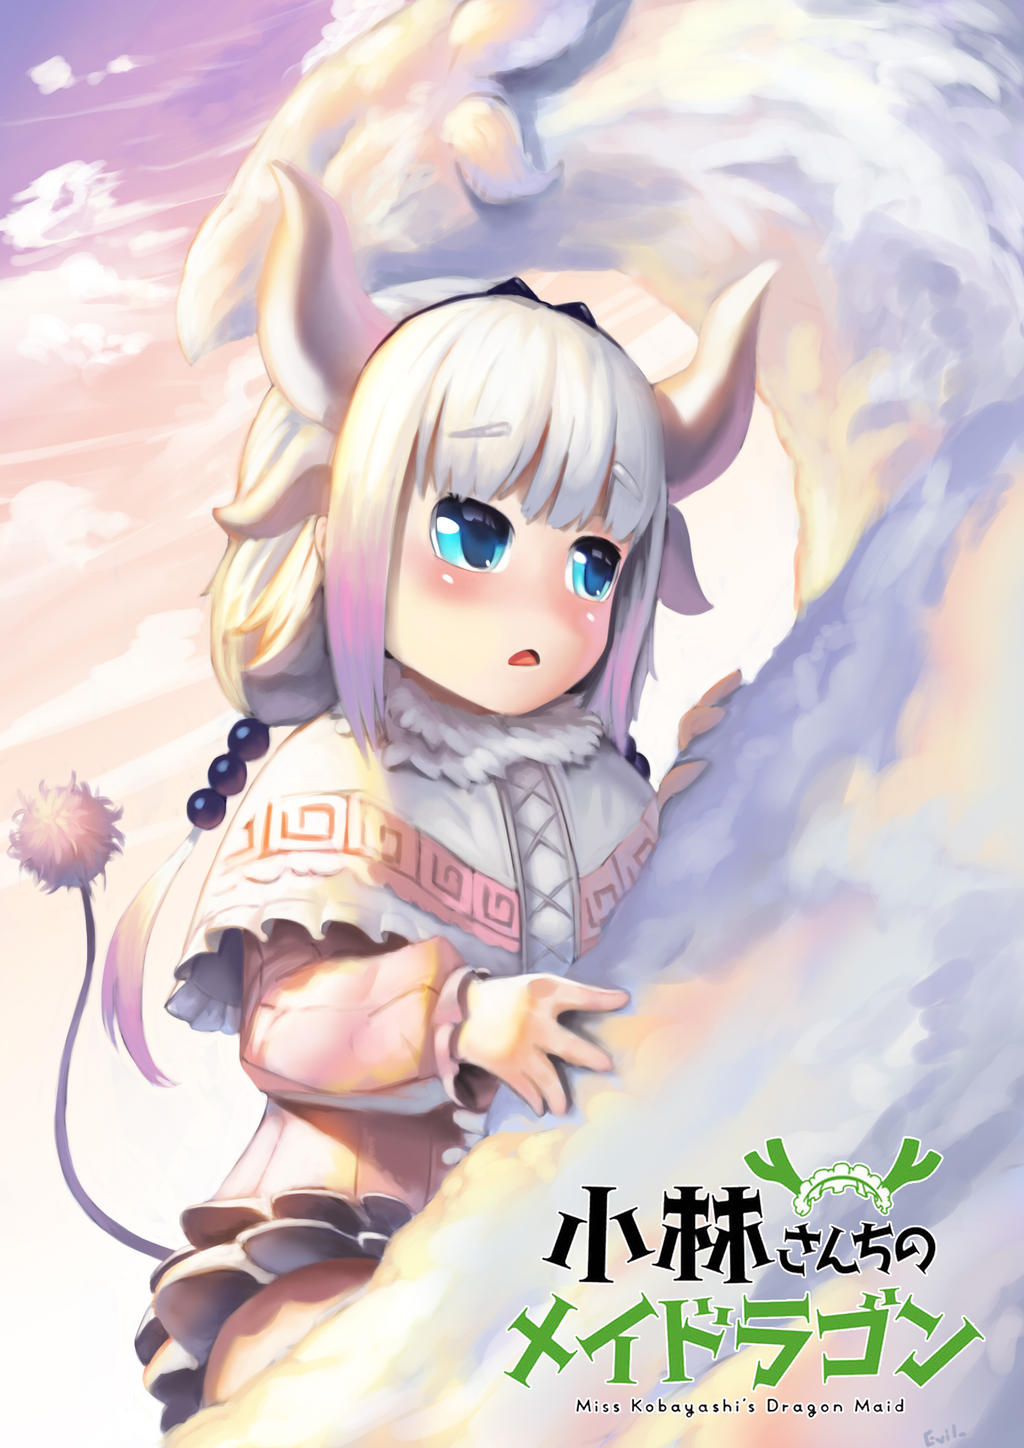 Kanna : Maid Dragon Fanart by EvilsmiLeStudio on DeviantArt